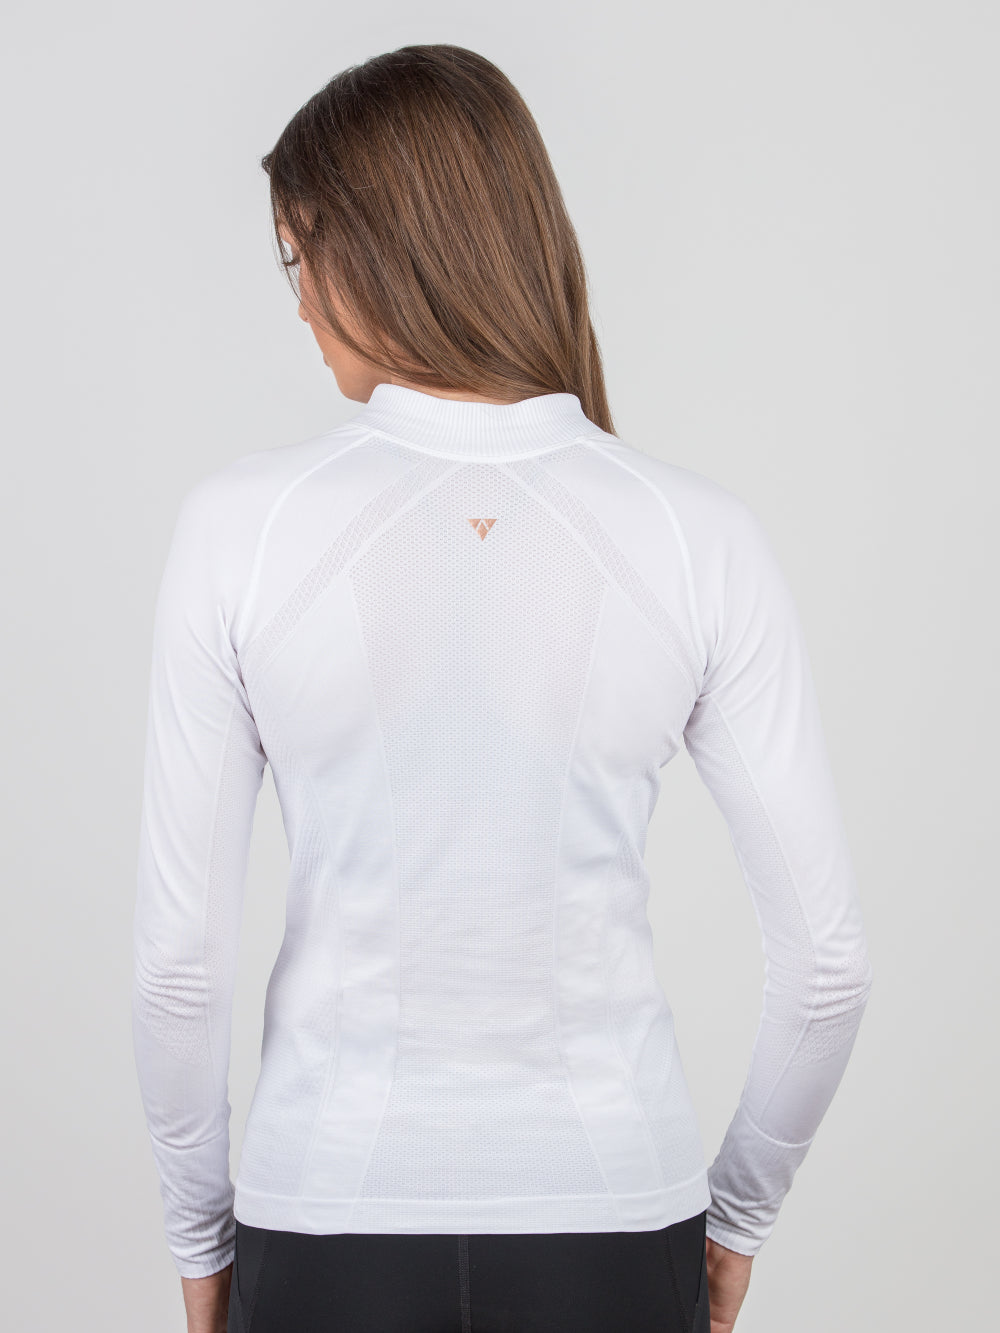 ANIQUE Signature UV Protection Shirt